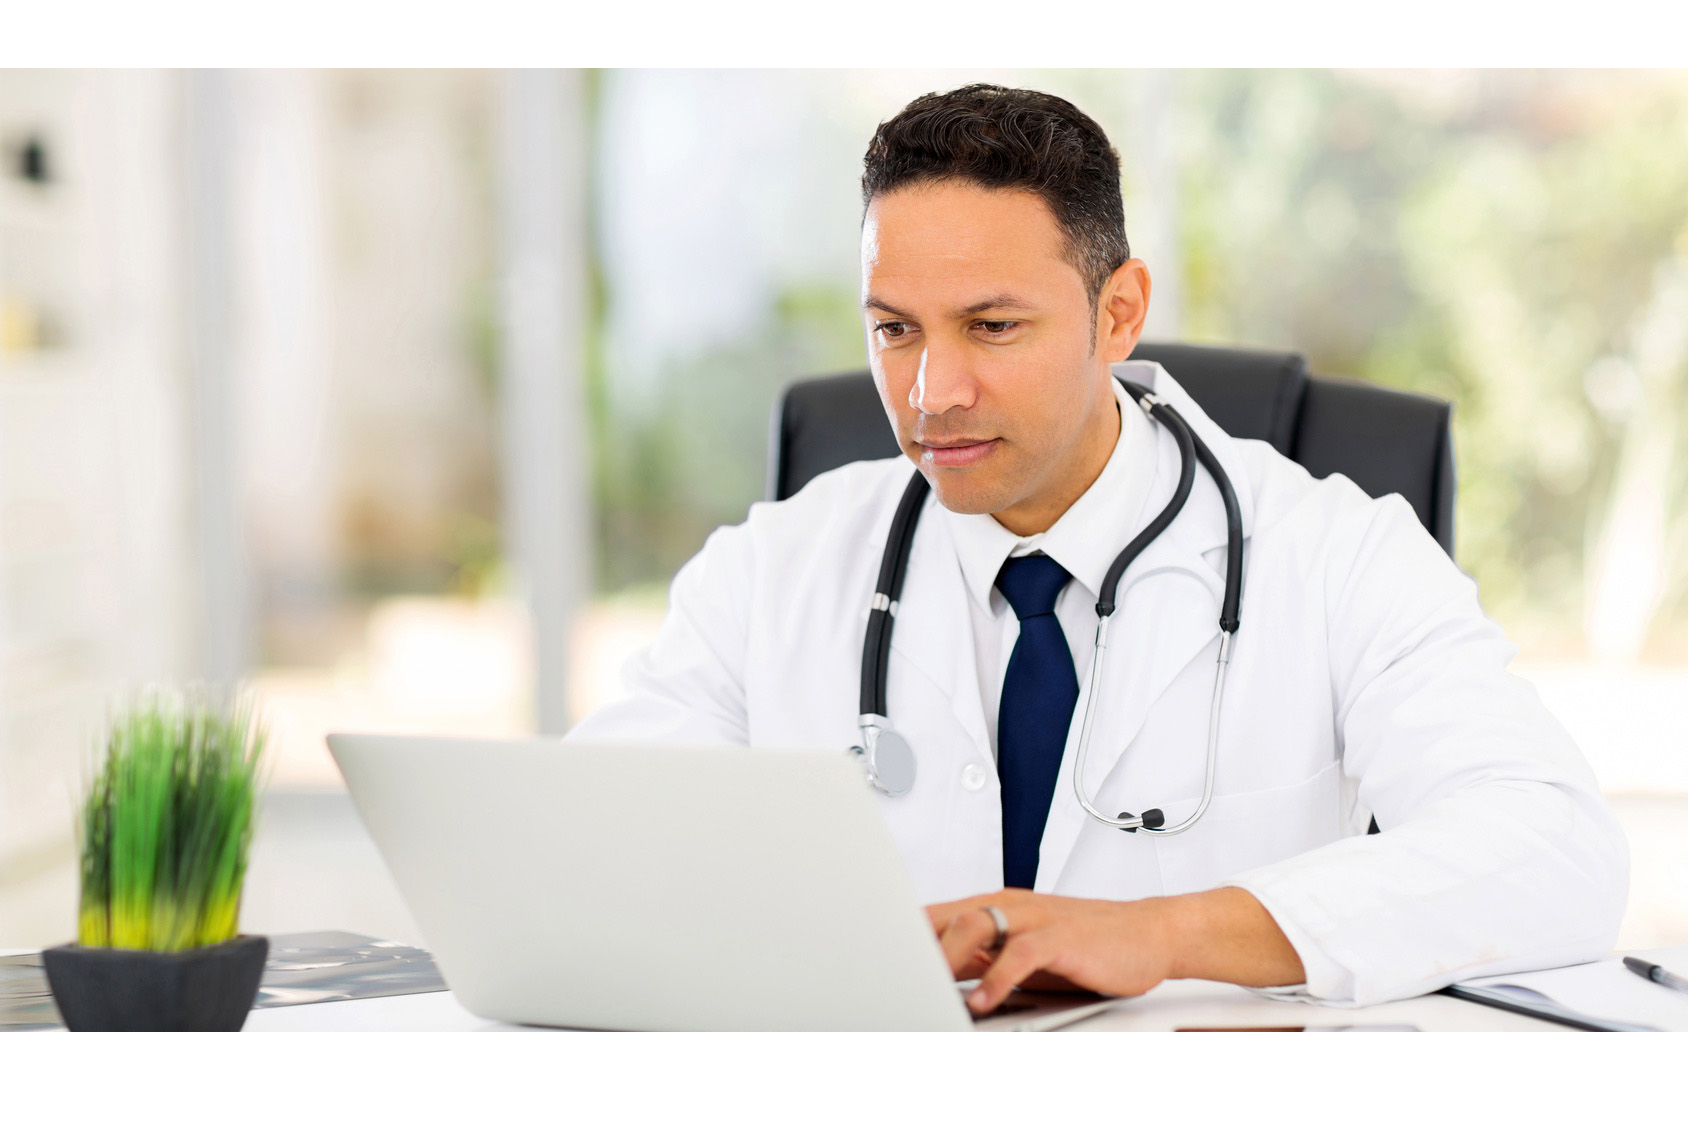 Male health care professional with stethoscope around neck working on laptop